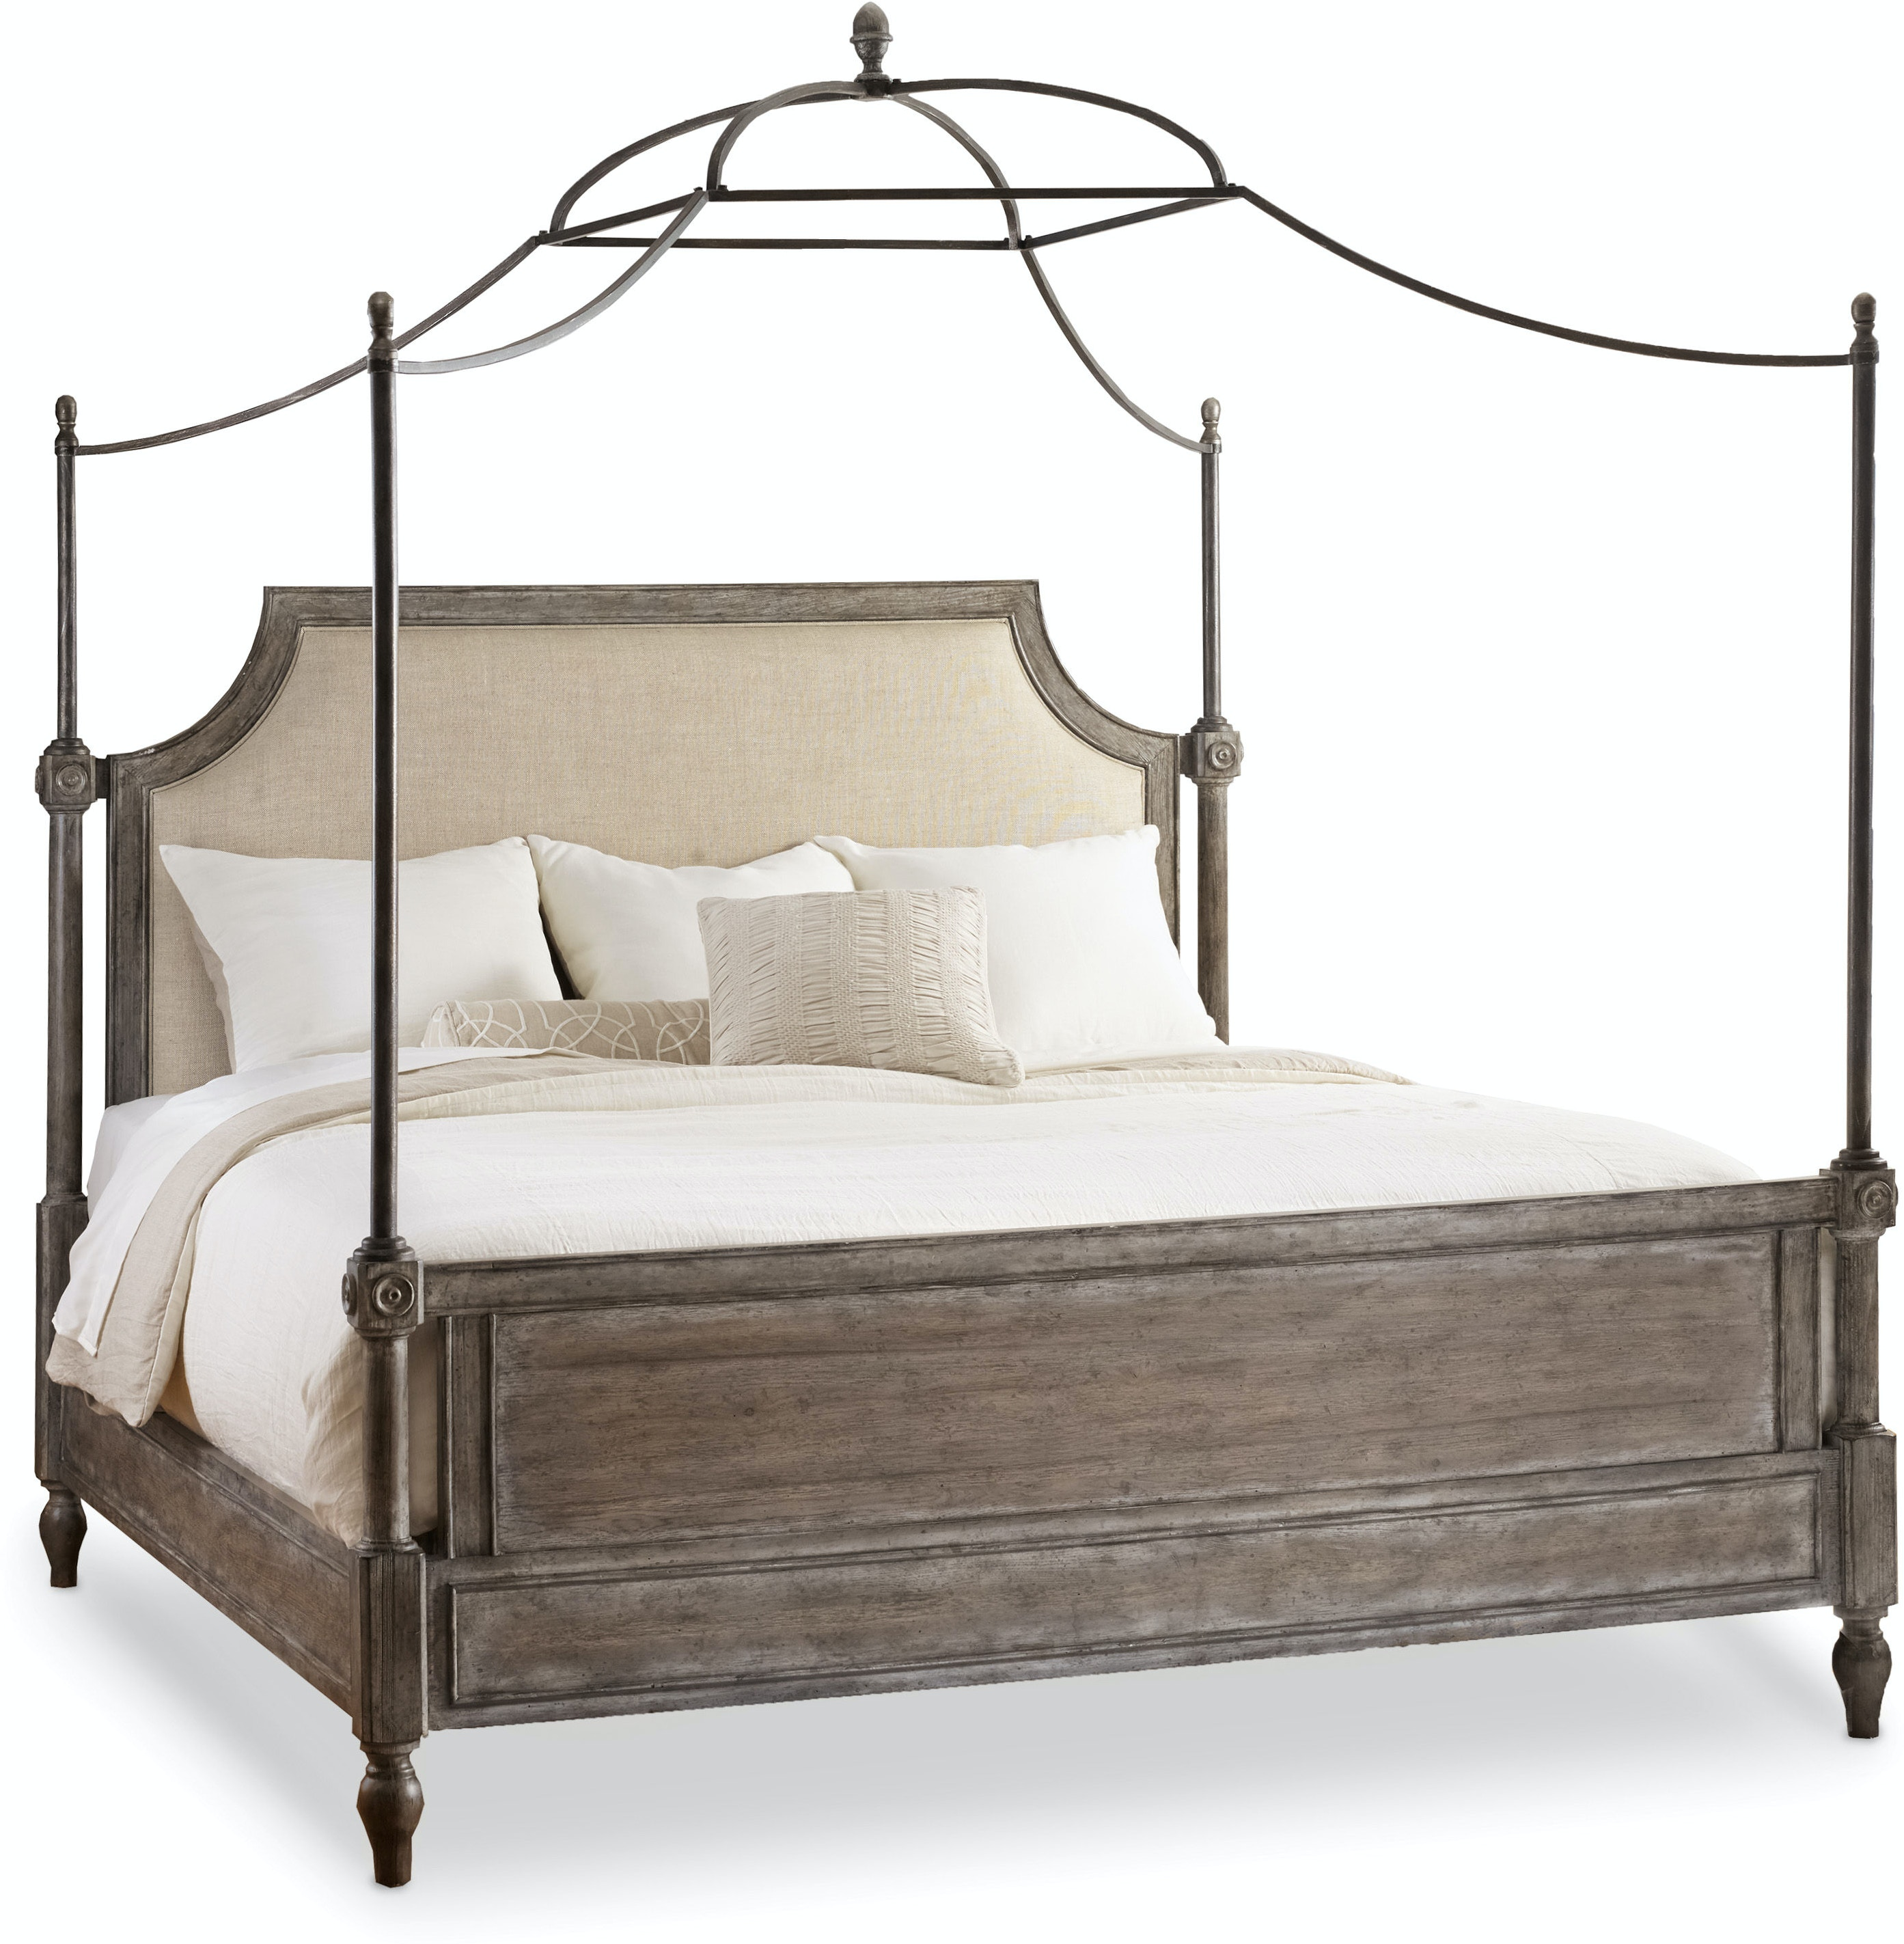 canopy do world img bedroom queen bed thumb set marlon gray market product